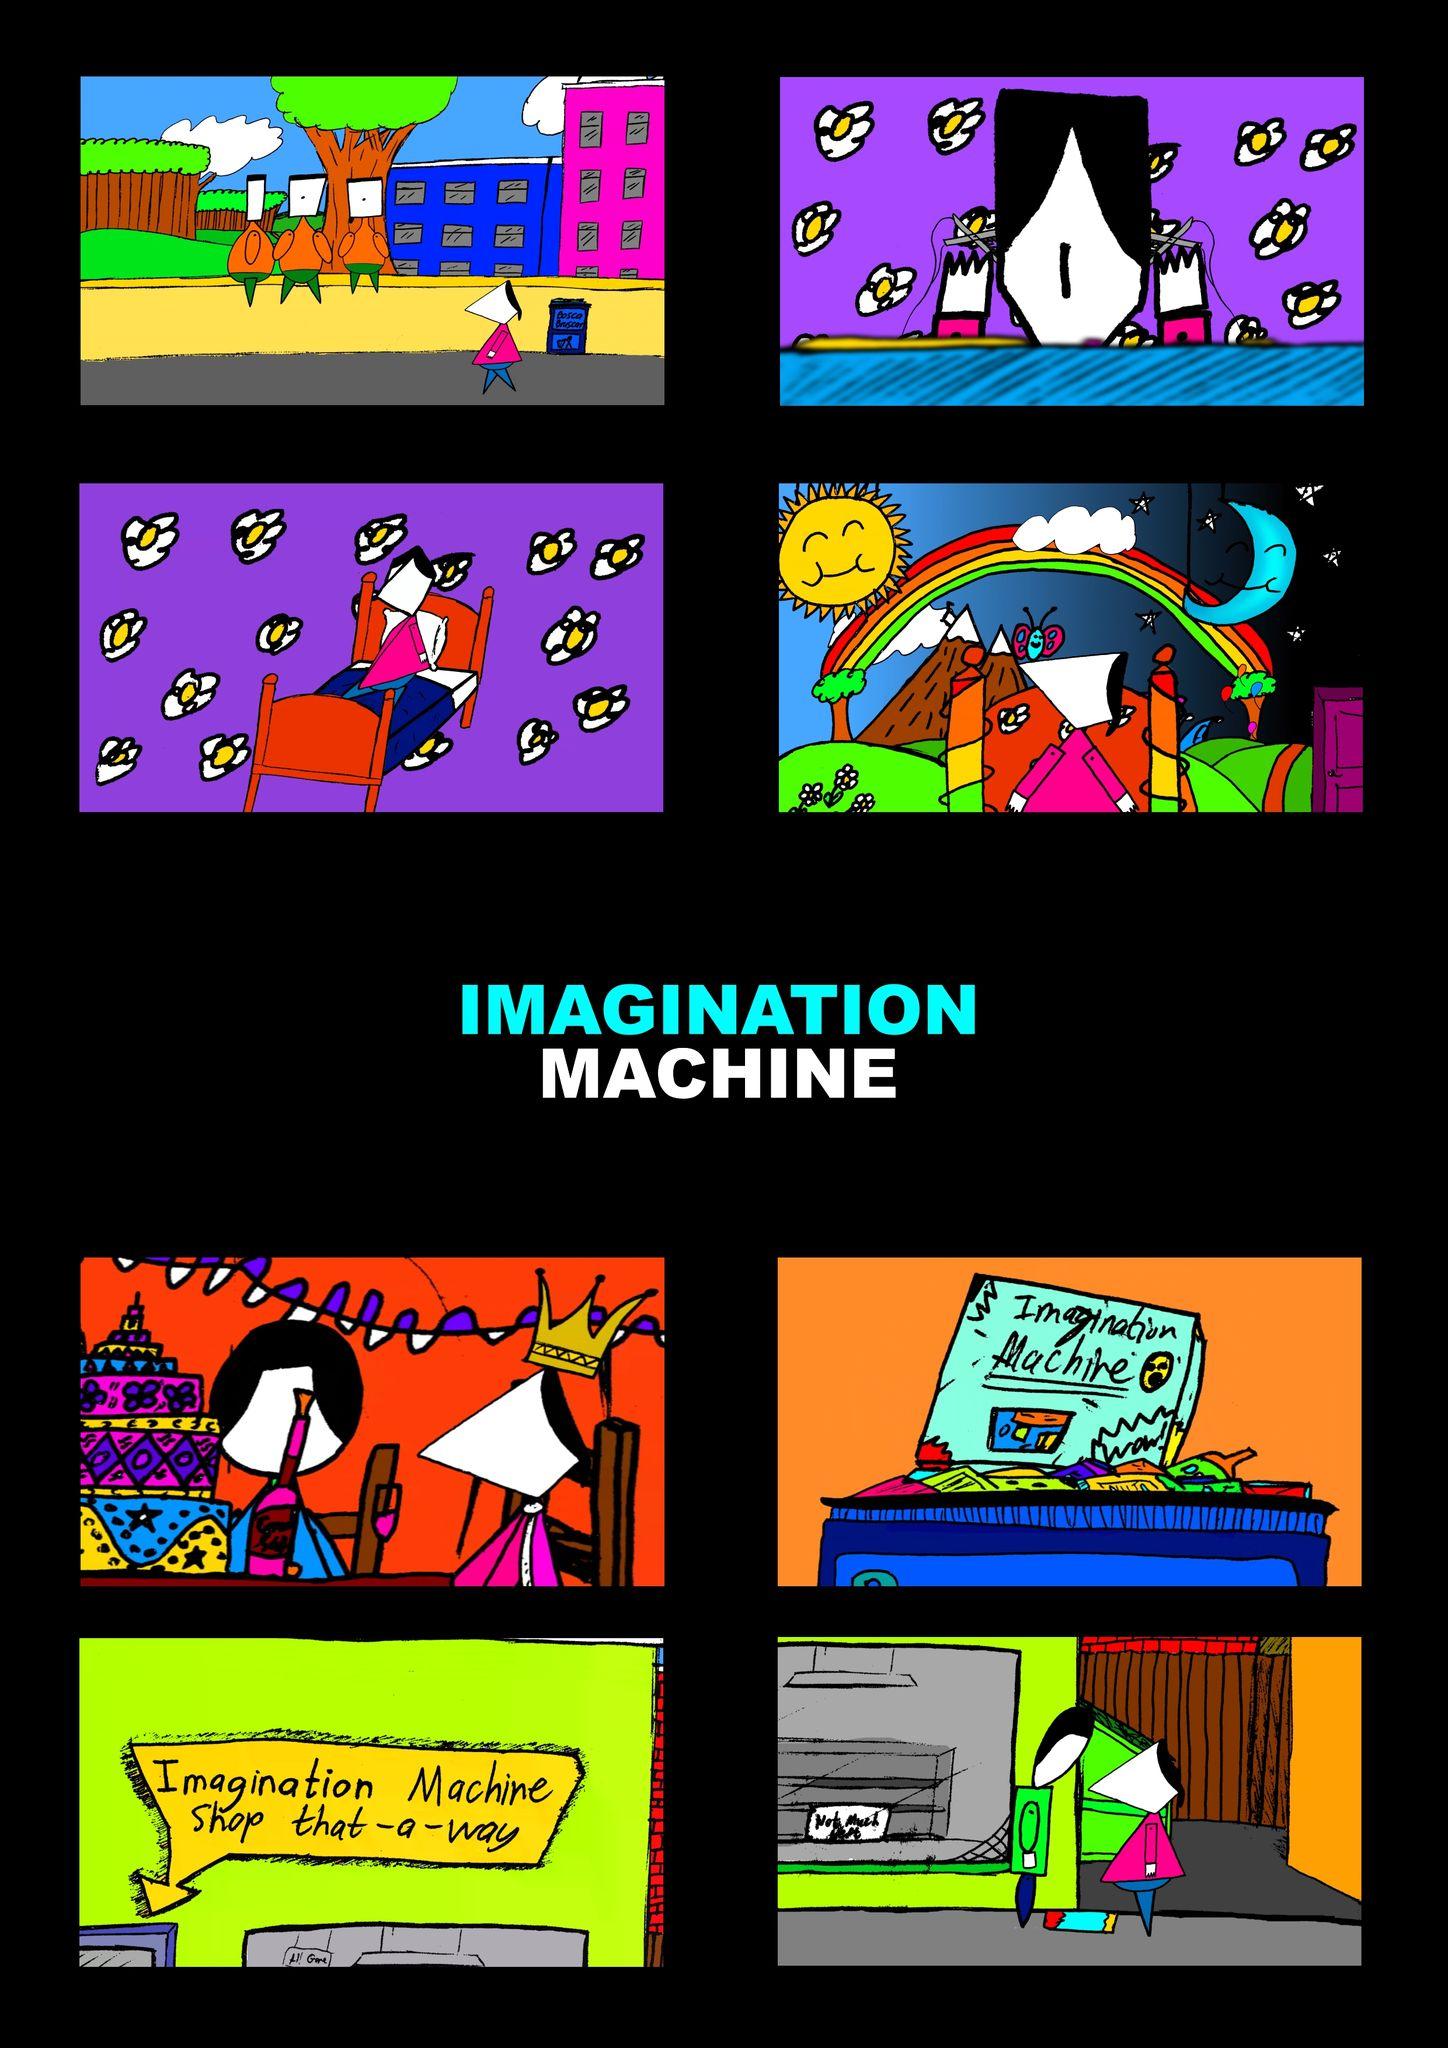 Imagination Machine